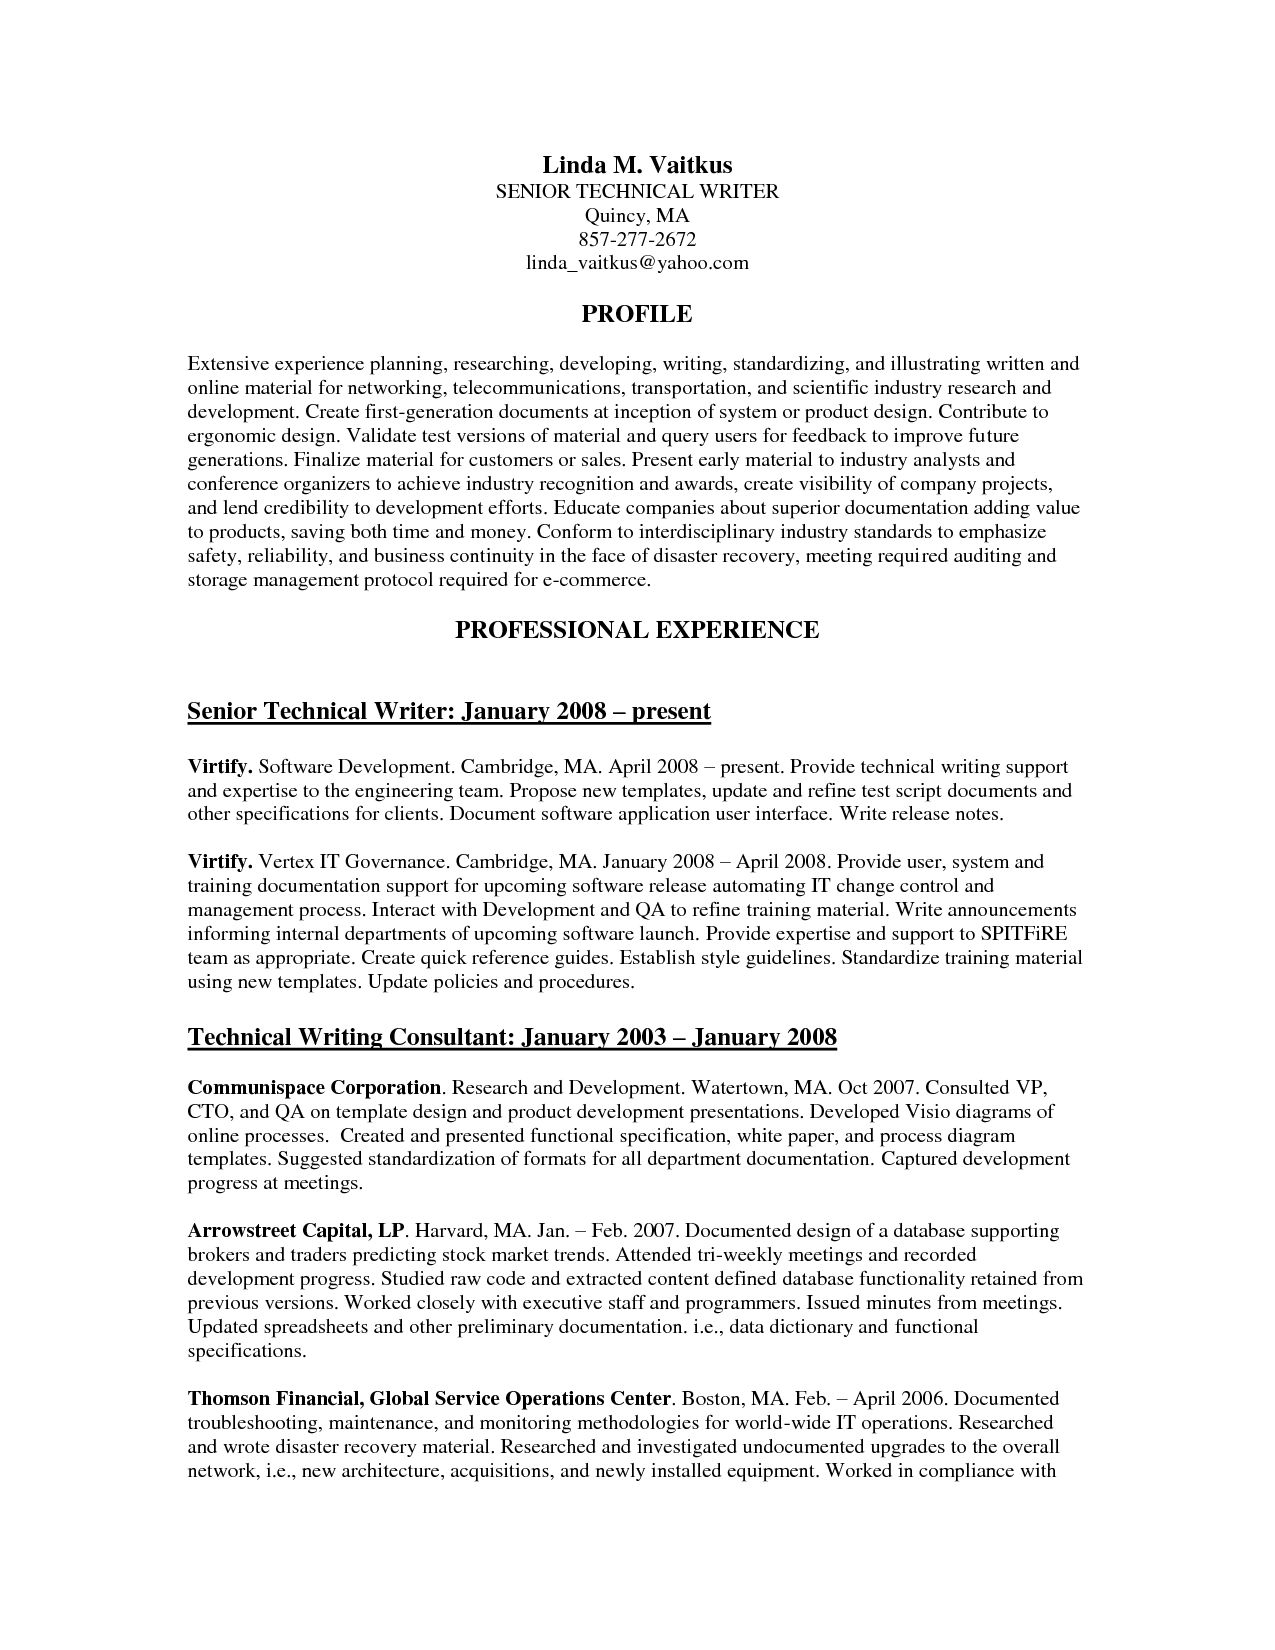 Professional Resume Builder Service Resume Help Boston Write About Something That Important